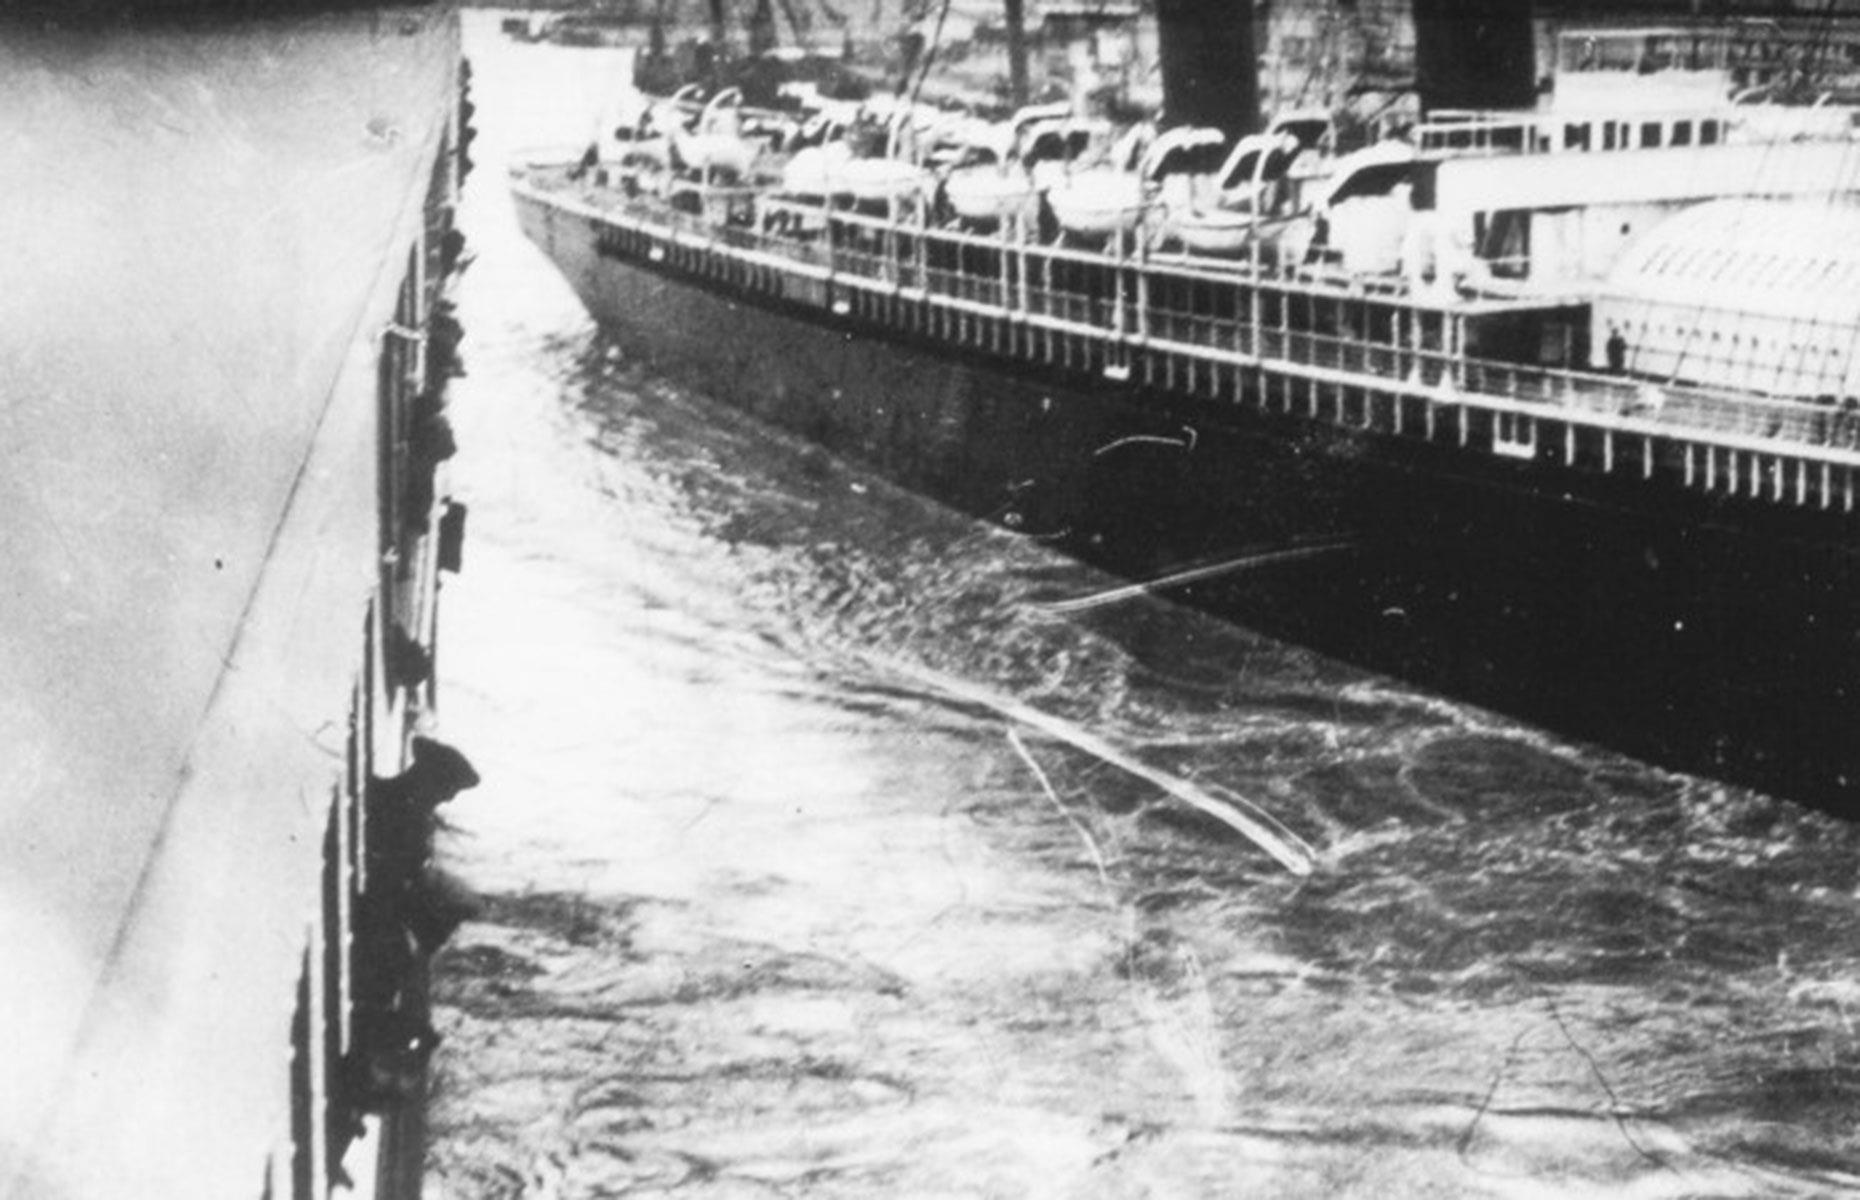 Slide 6 of 46: But even the Titanic's departure wasn't without drama. As she pulled away from the dock at Southampton she almost crashed into another ship. The New York (pictured right) was moored nearby and, as the Titanic was leaving, the massive ropes that held the smaller ship snapped. Only quick thinking from the Titanic's crew, who used a wash of water from a propeller to push the other ship away, avoided a collision. It was an ominous start to the voyage.